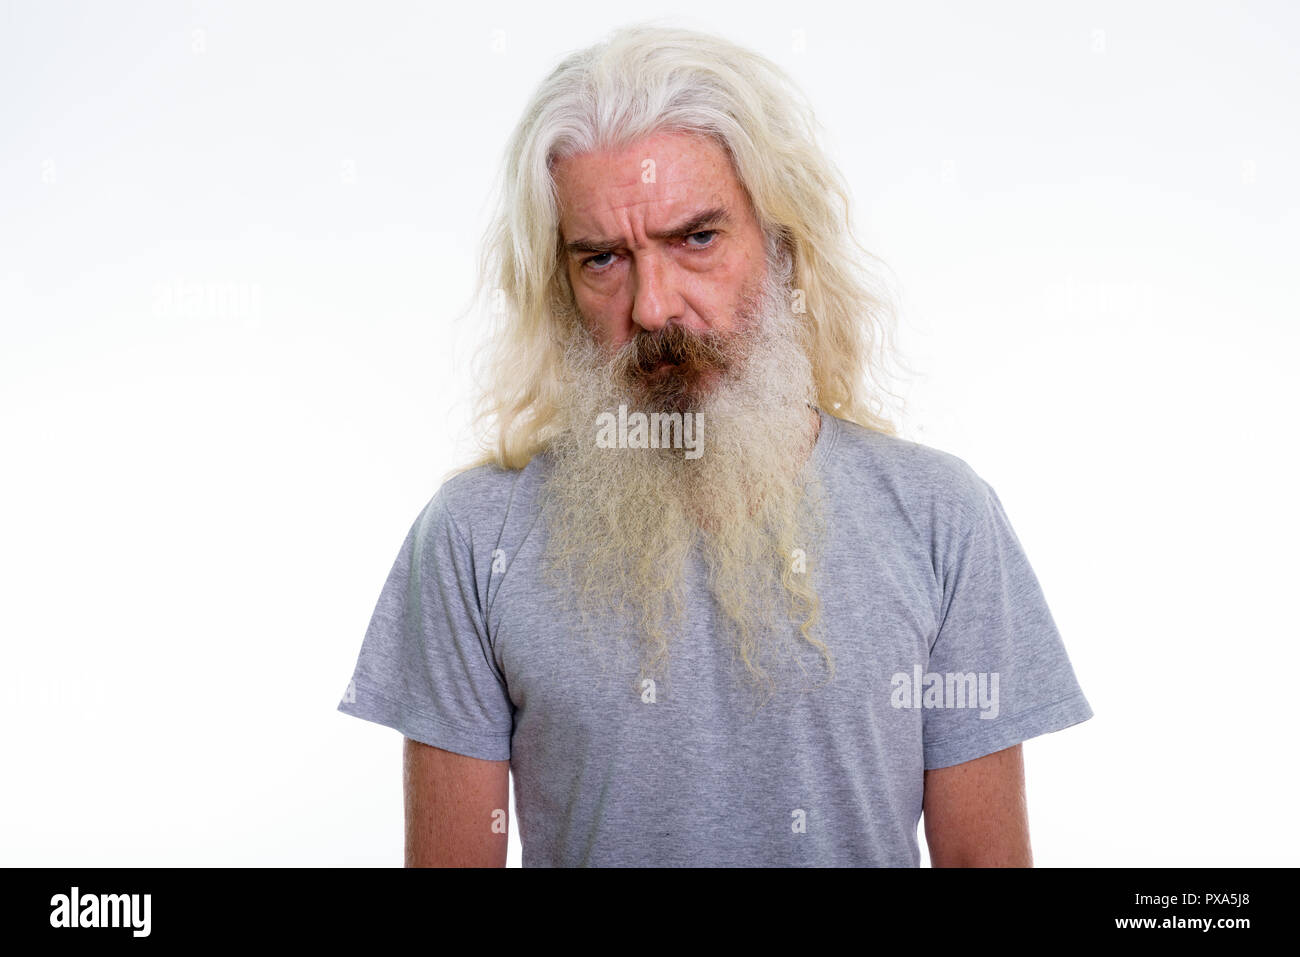 Studio shot of senior bearded man looking upset  - Stock Image